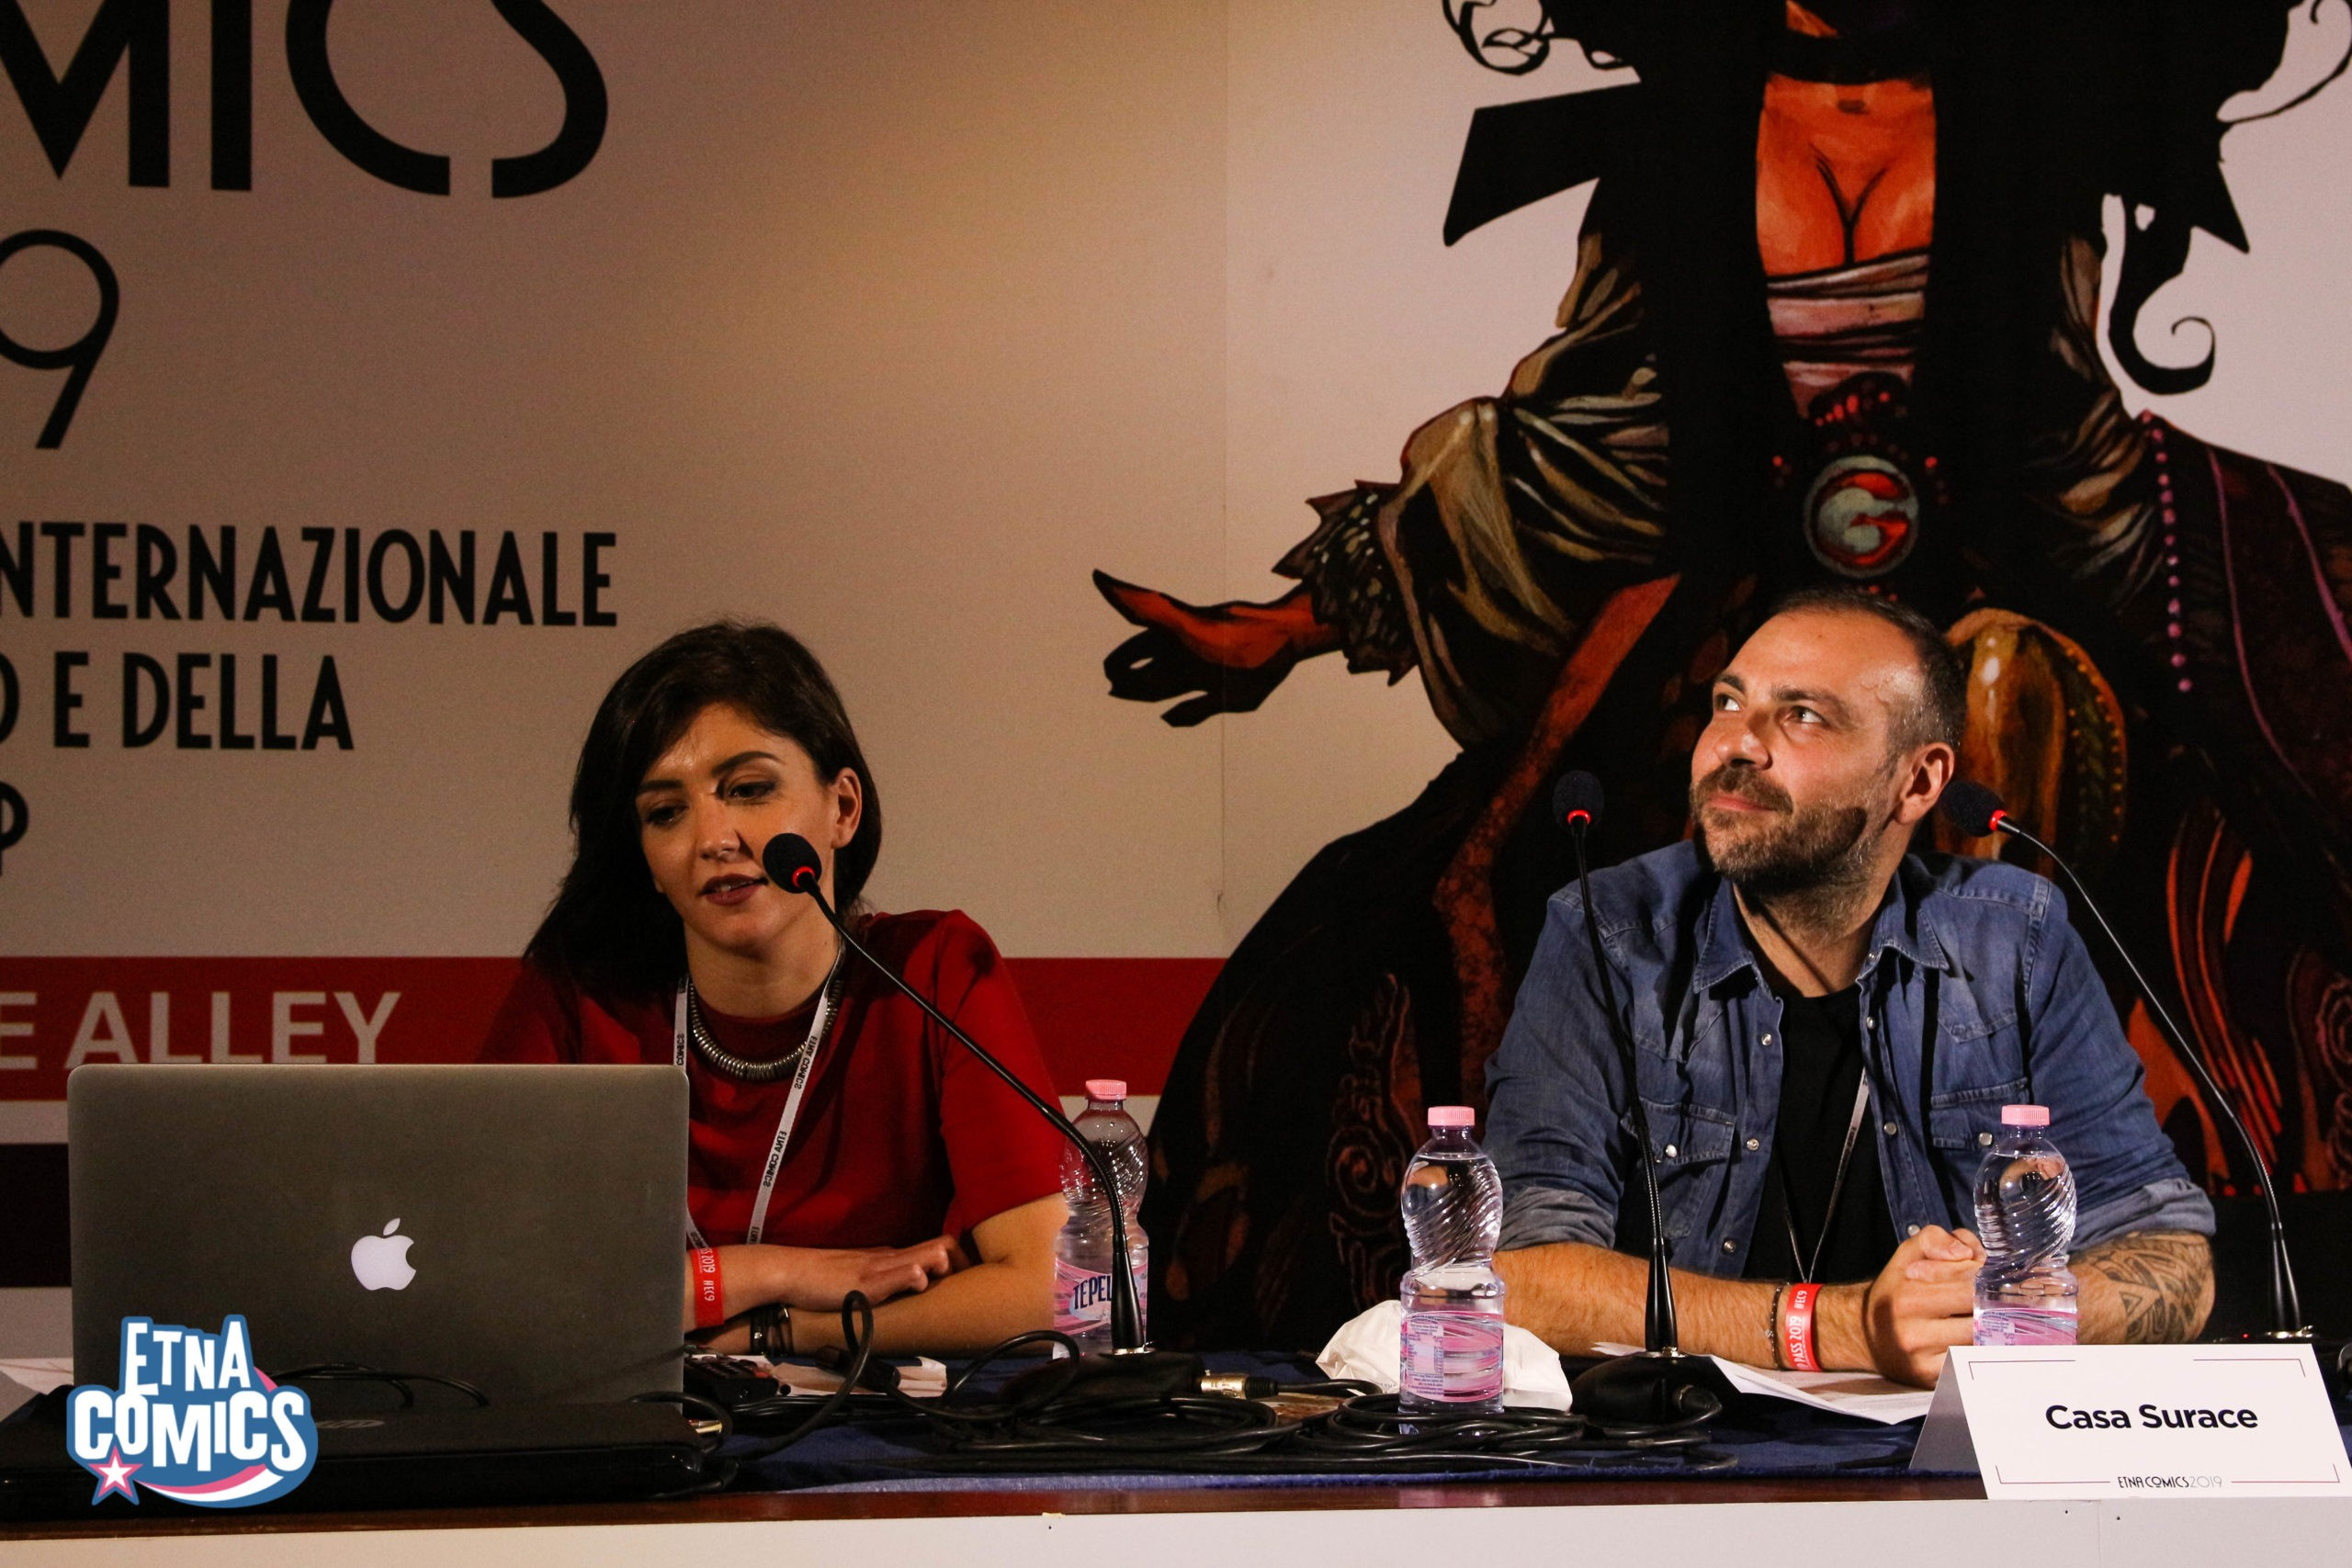 Casa Surace Etna Comics 2019 Keo Marketing